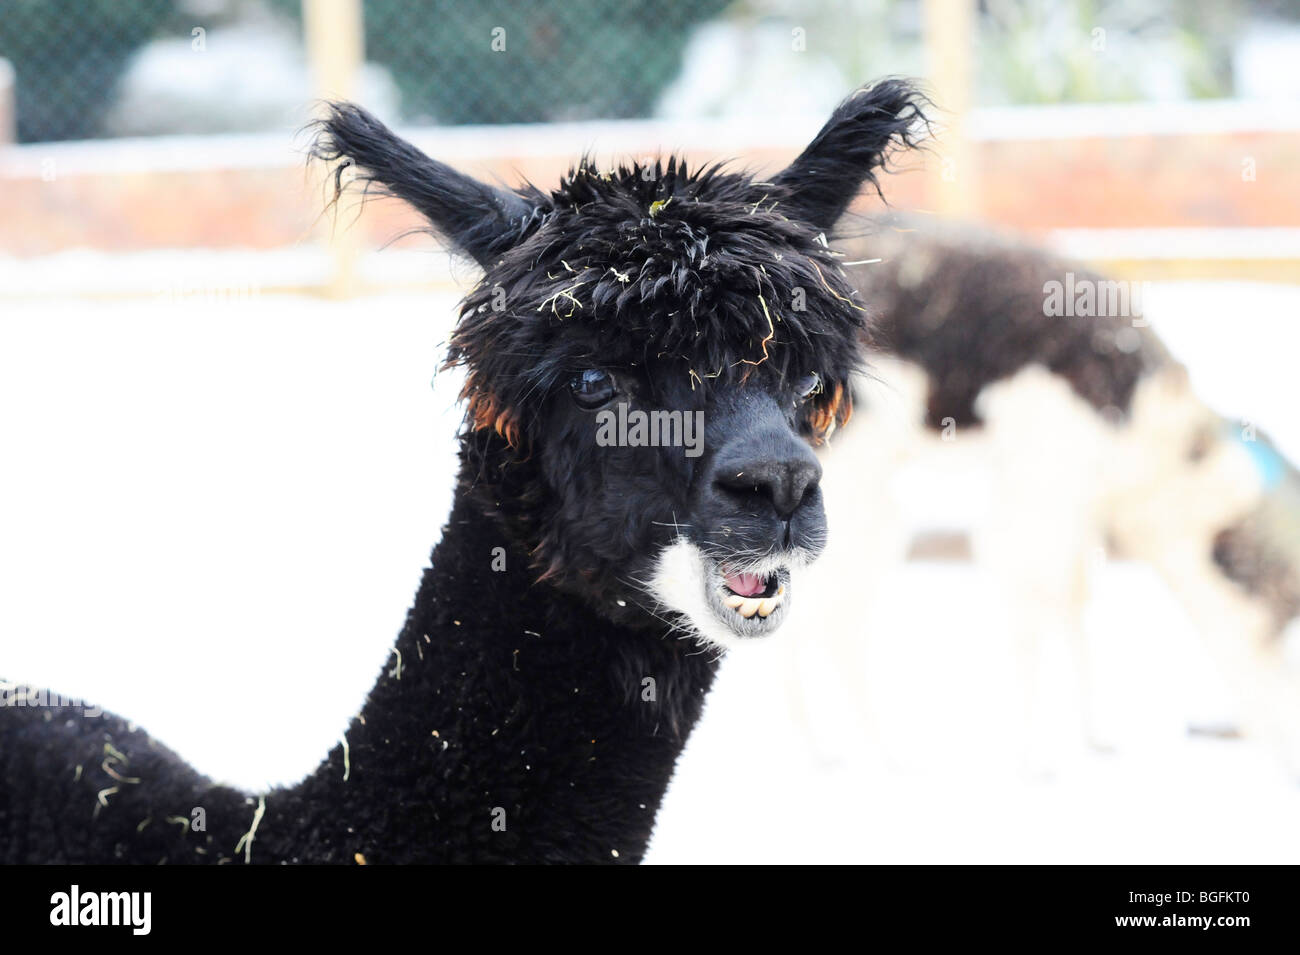 Alpaca (Lama pacos) at Twycross Zoo in the snow - Stock Image